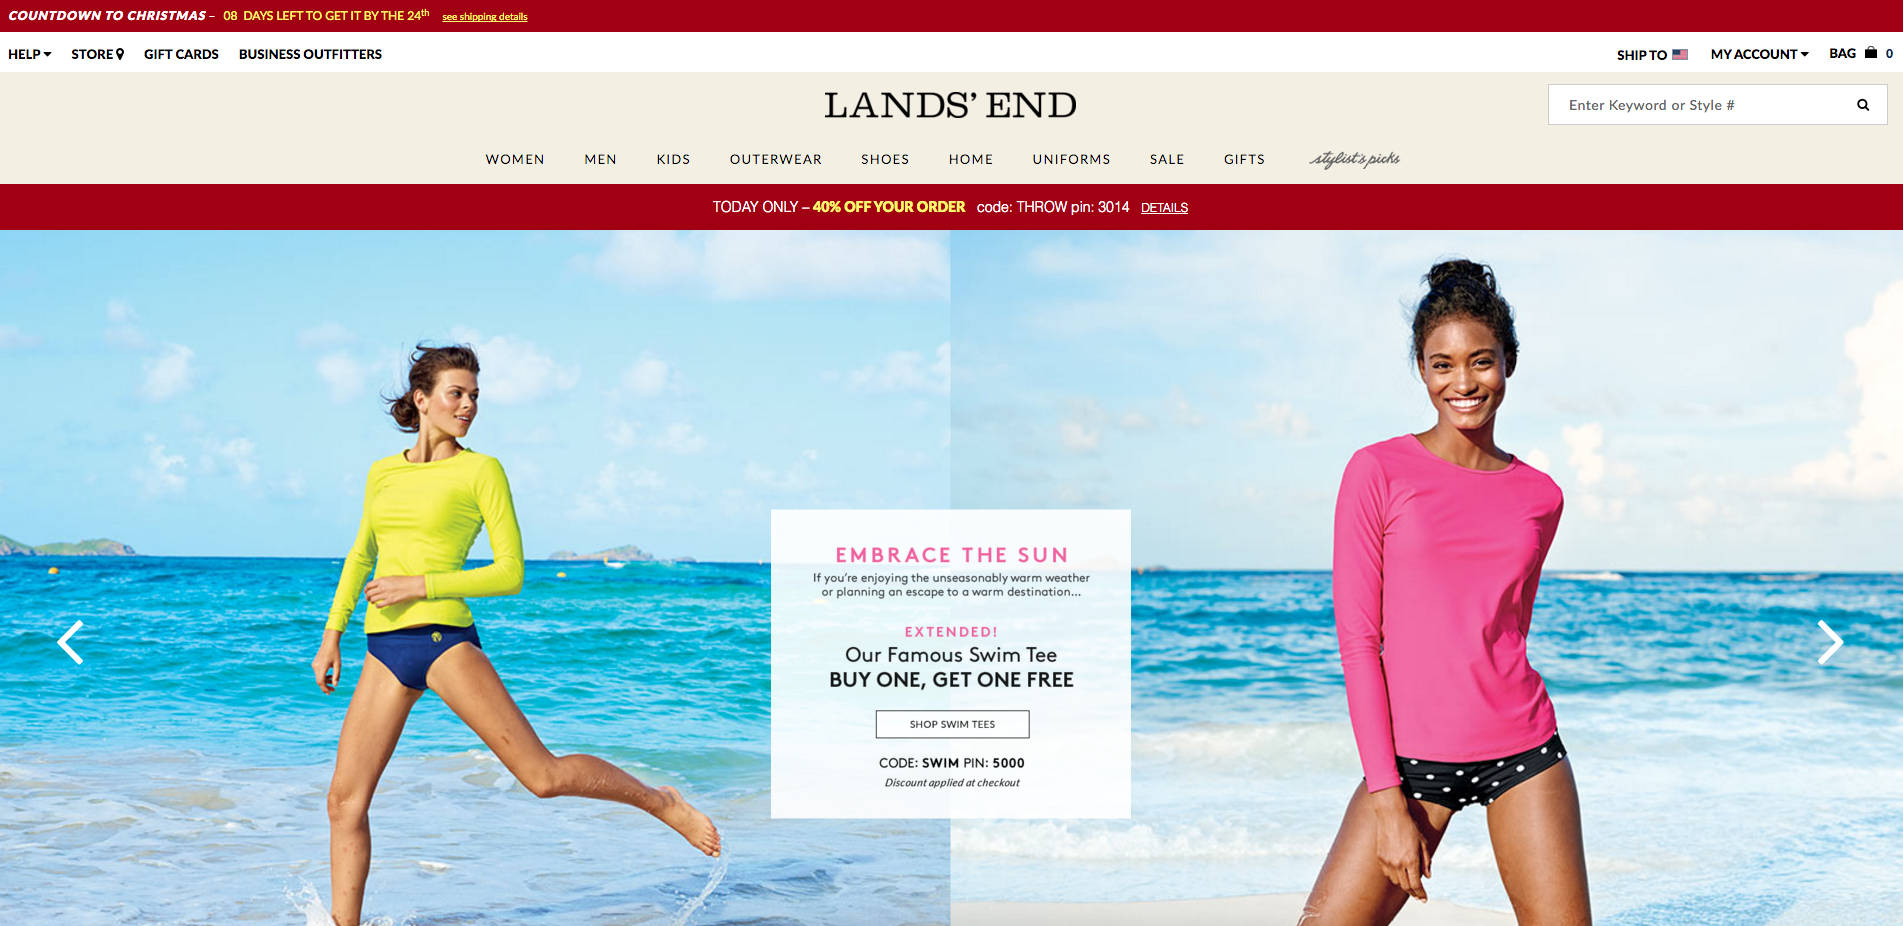 lands end buying essay Read this essay on lands end sustainability come browse our large digital warehouse of free sample essays get the knowledge you need in order to pass your classes and more.